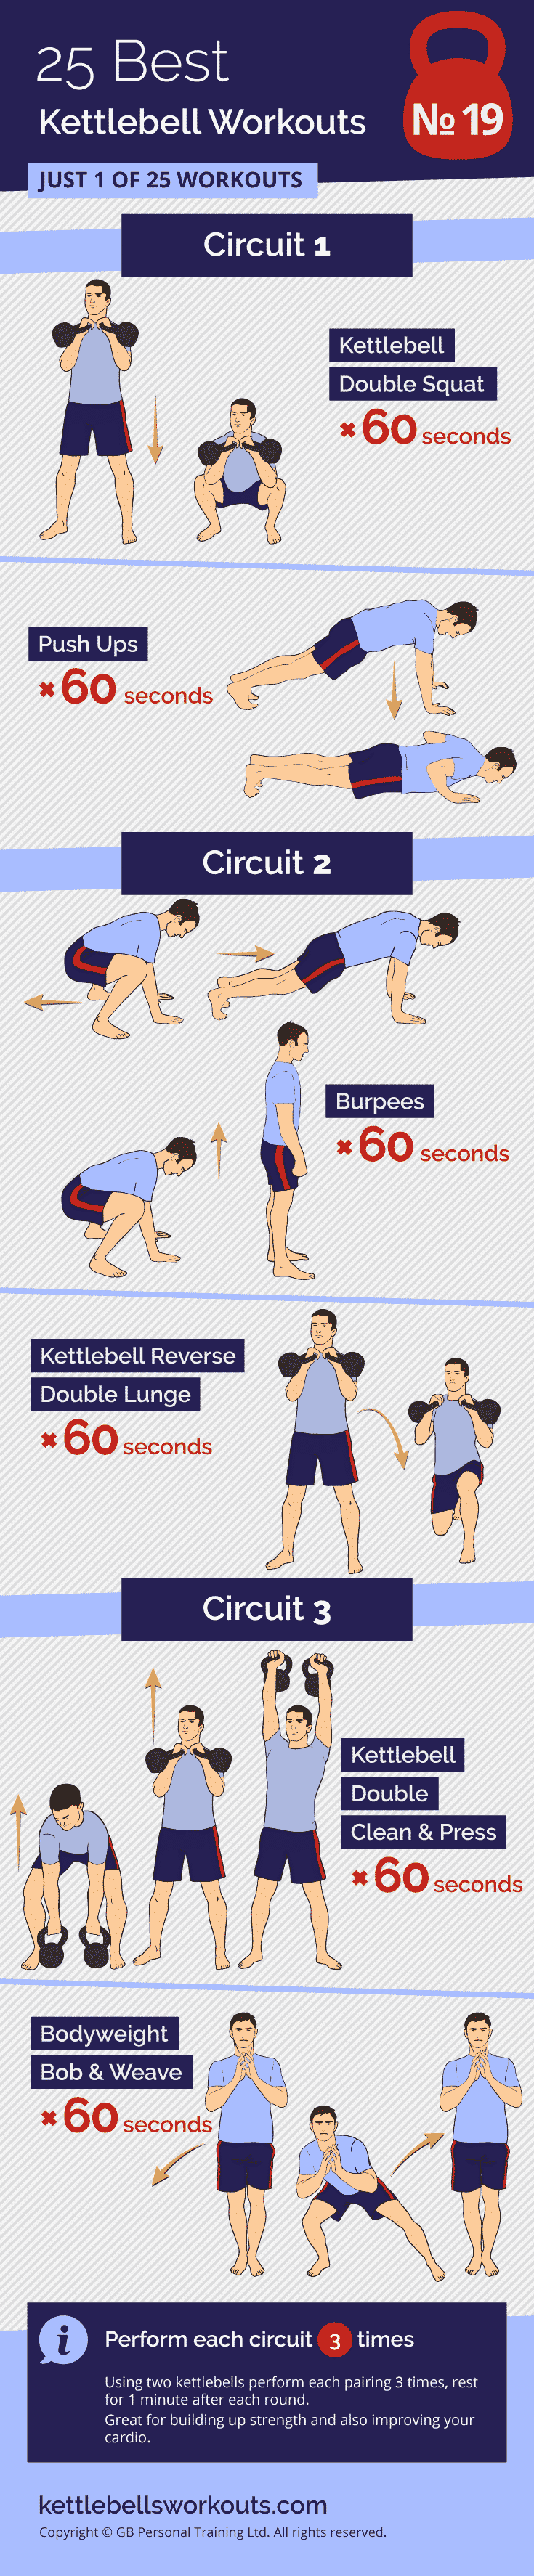 Double Trouble Kettlebell Workout